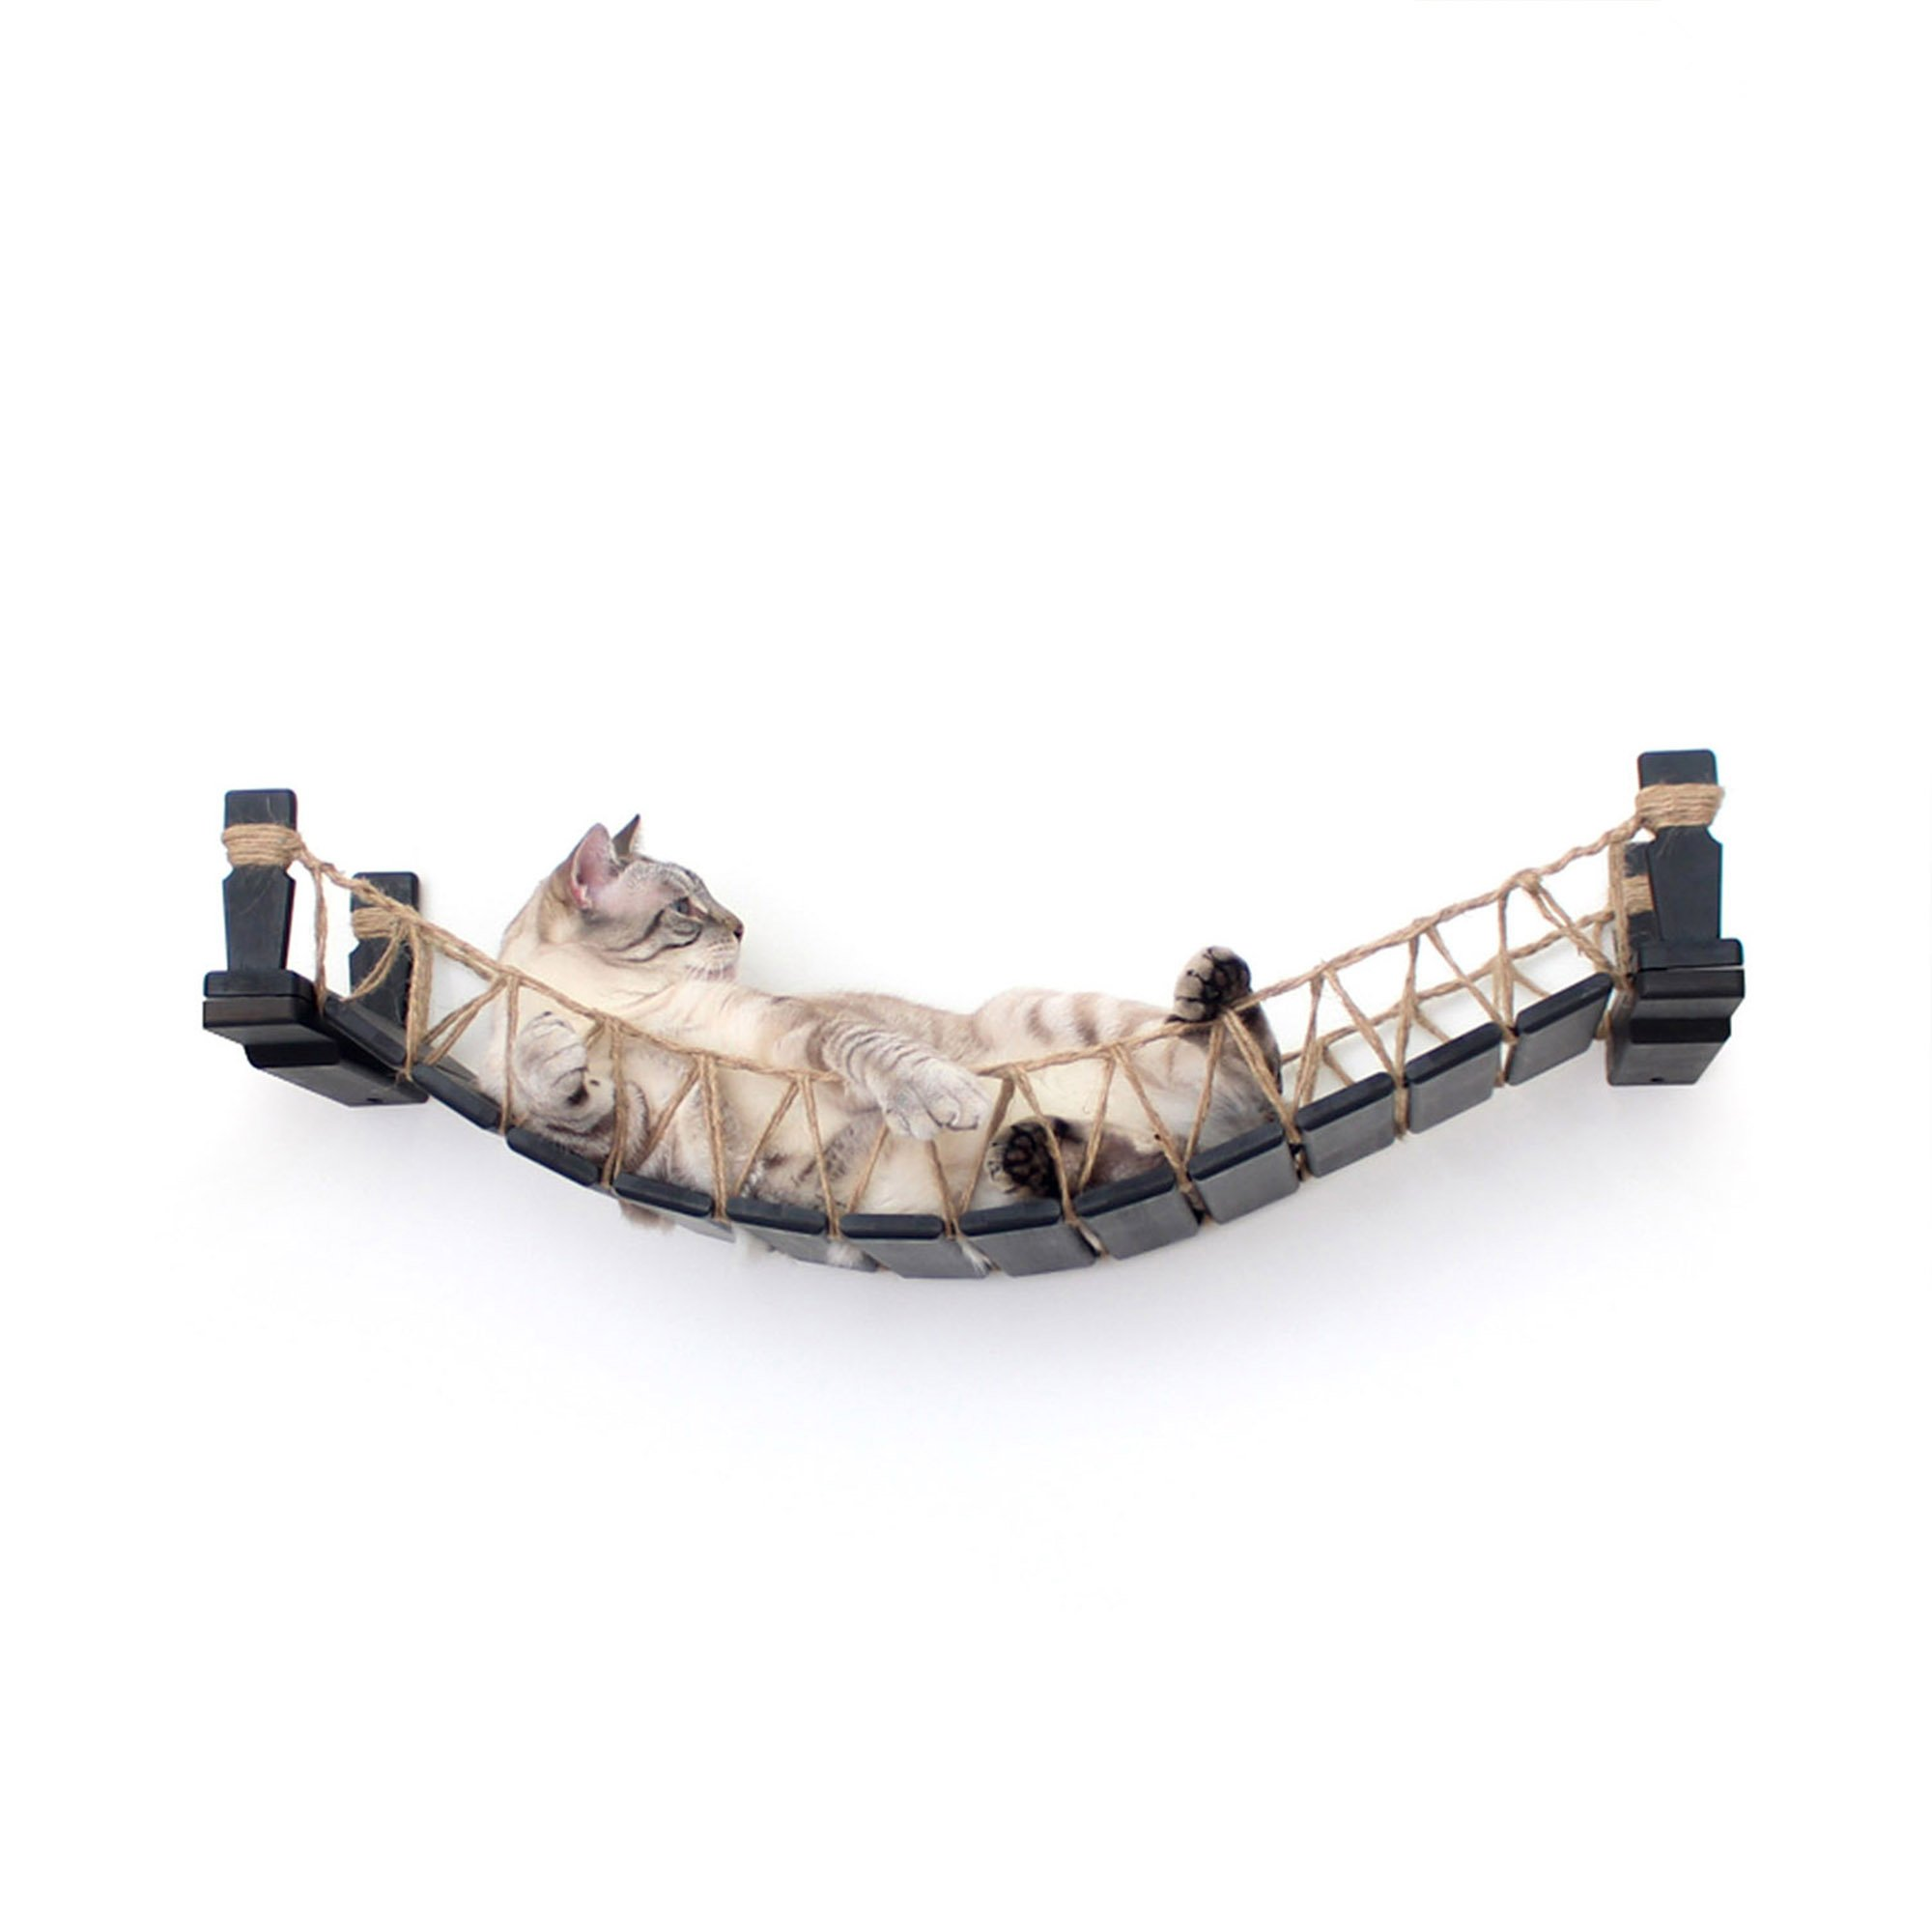 Catastrophicreations The Cat Mod Bridge Lounge Hammocks For Cats In English Chestnut, 64 In W X 6 In H, 18 Lb